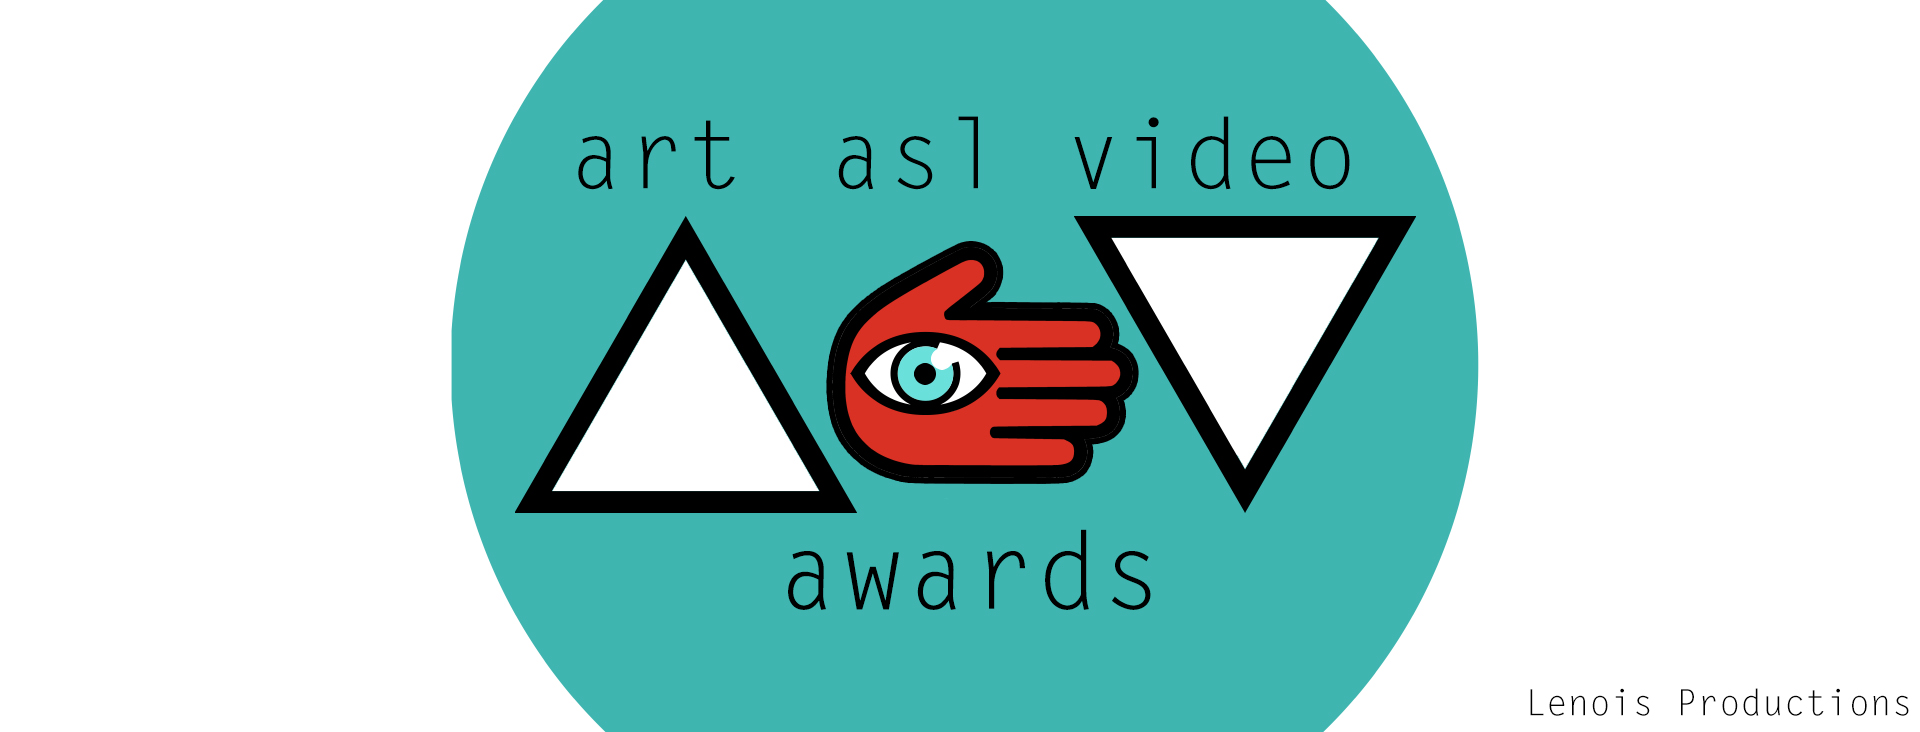 Art ASL Video